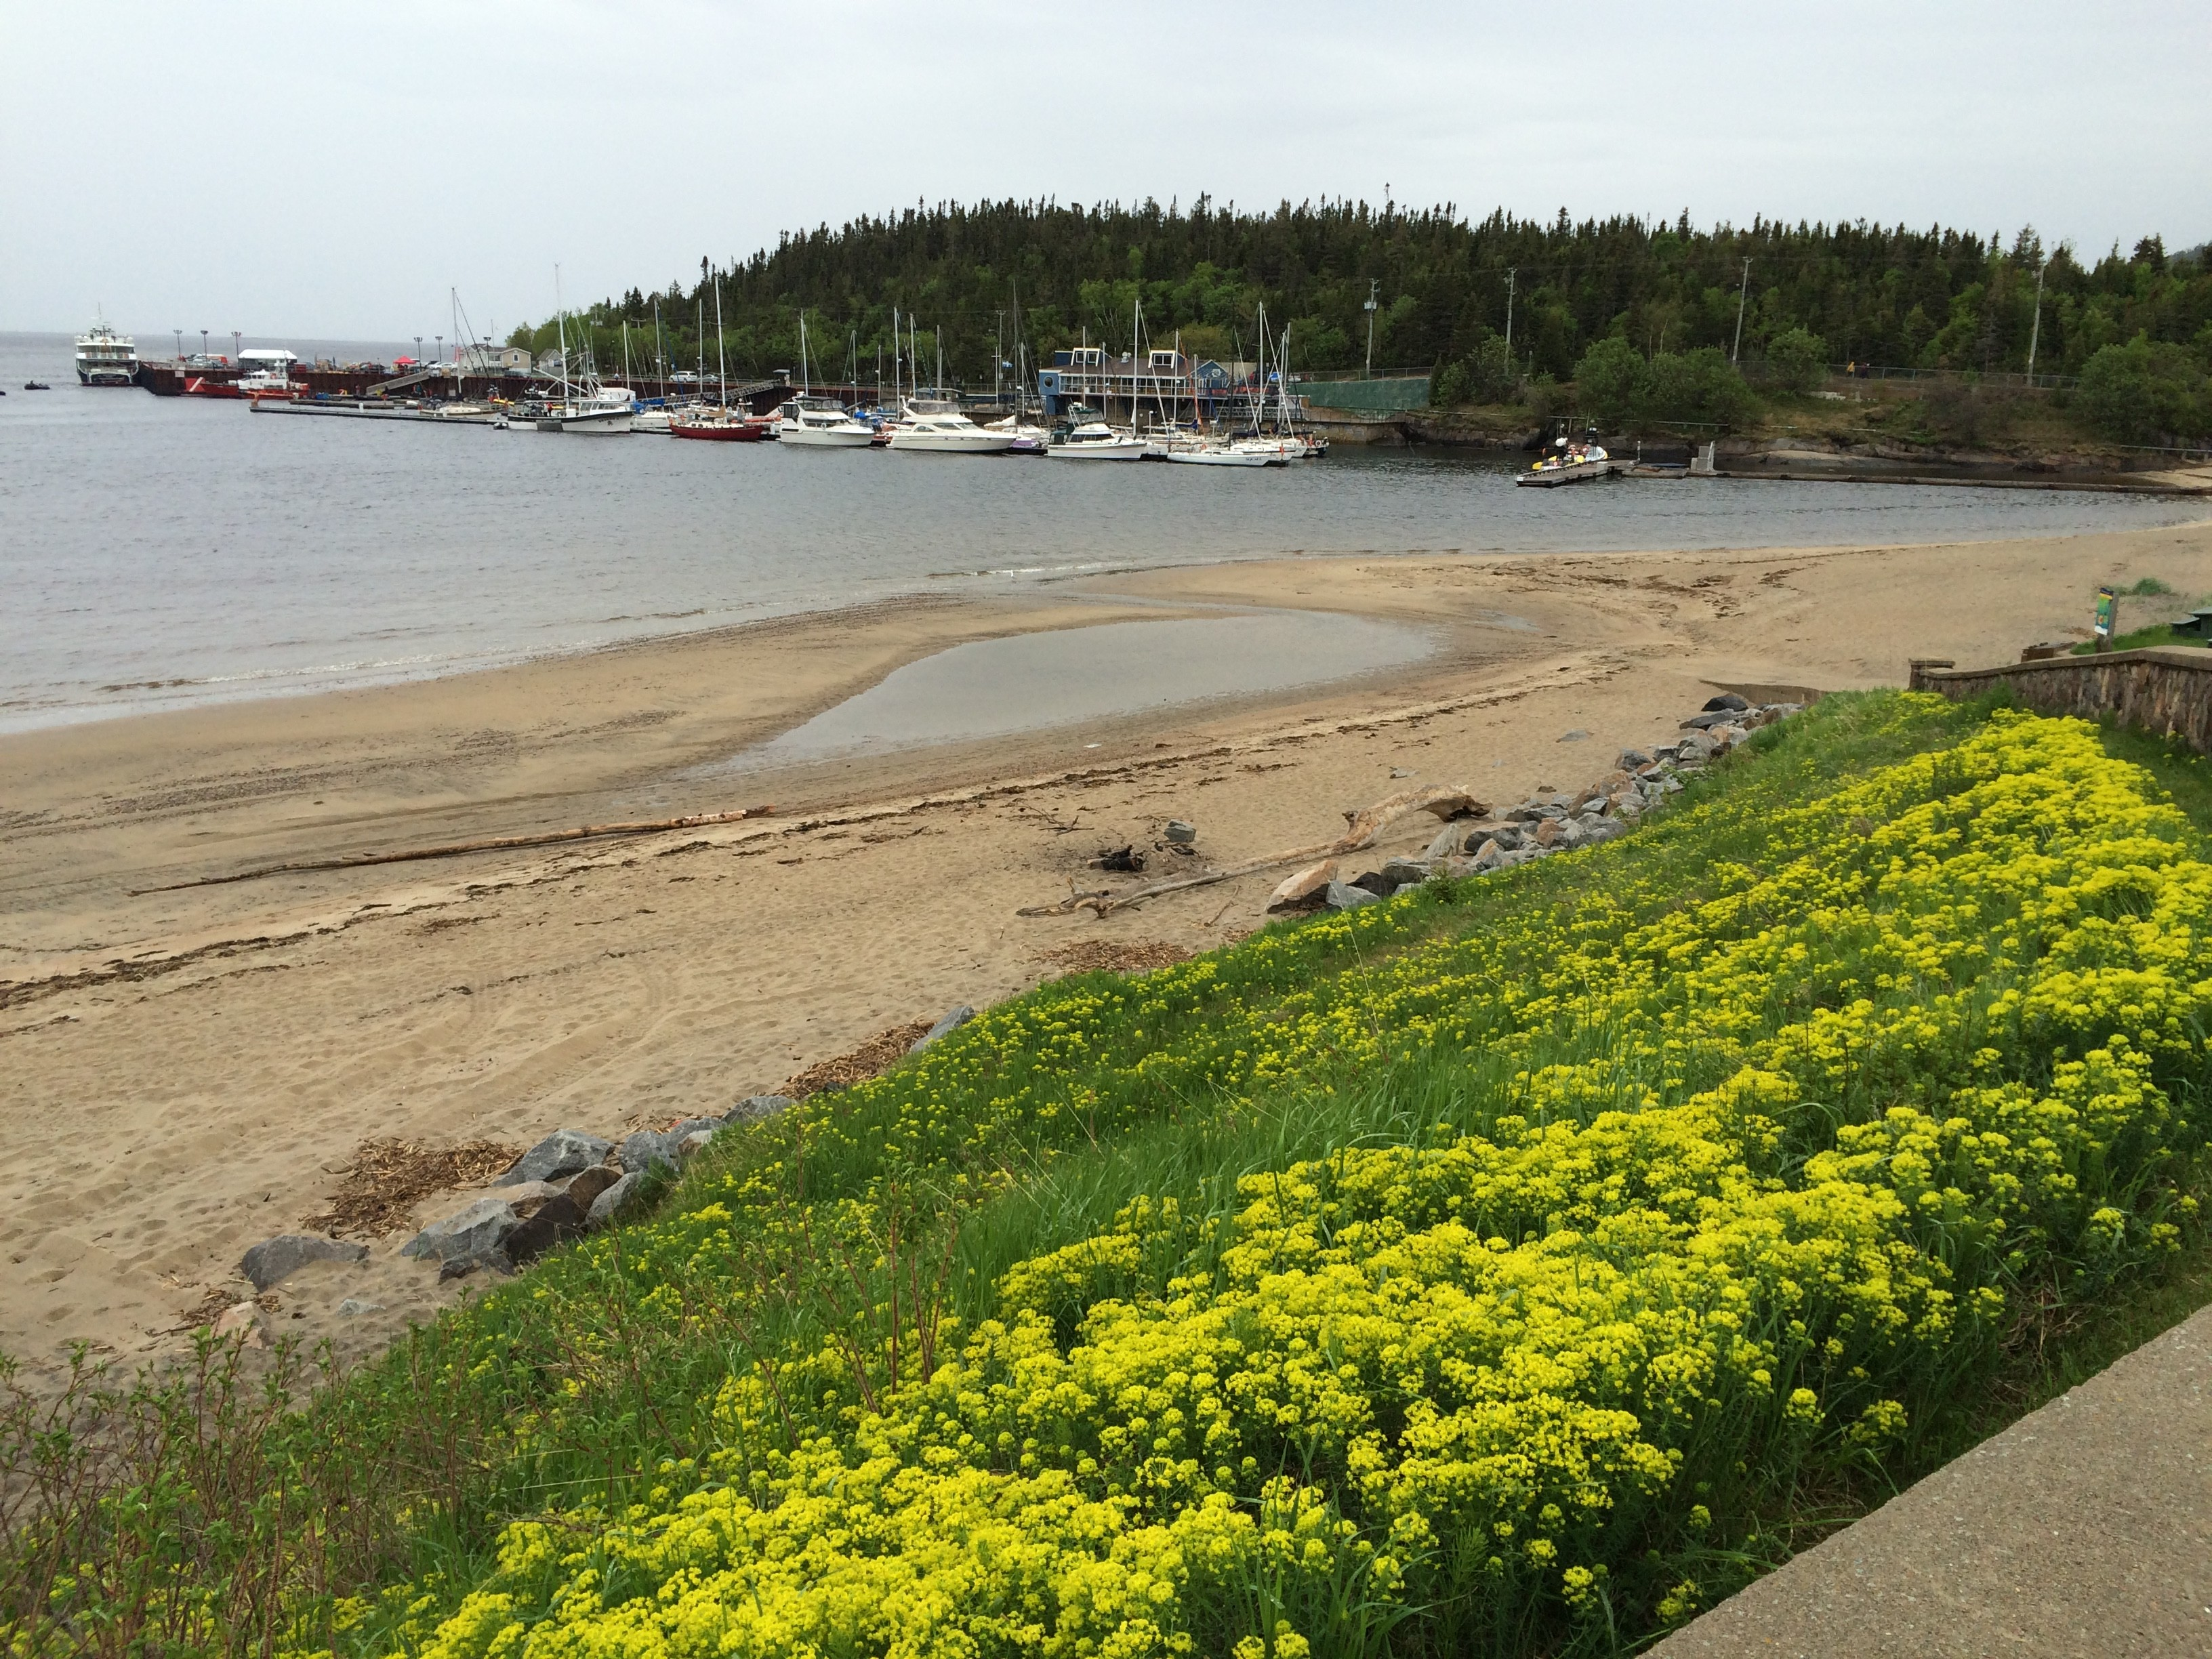 Even on a cool, misty, early-June day, Tadoussac's beach and wildflowers are beautiful. Summer comes late to the town, which is located where the Saguenay River meets the St. Lawrence. Nearby is a spectacular fjord cut by glaciers thousands of years ago. Photos by E'louise Ondash